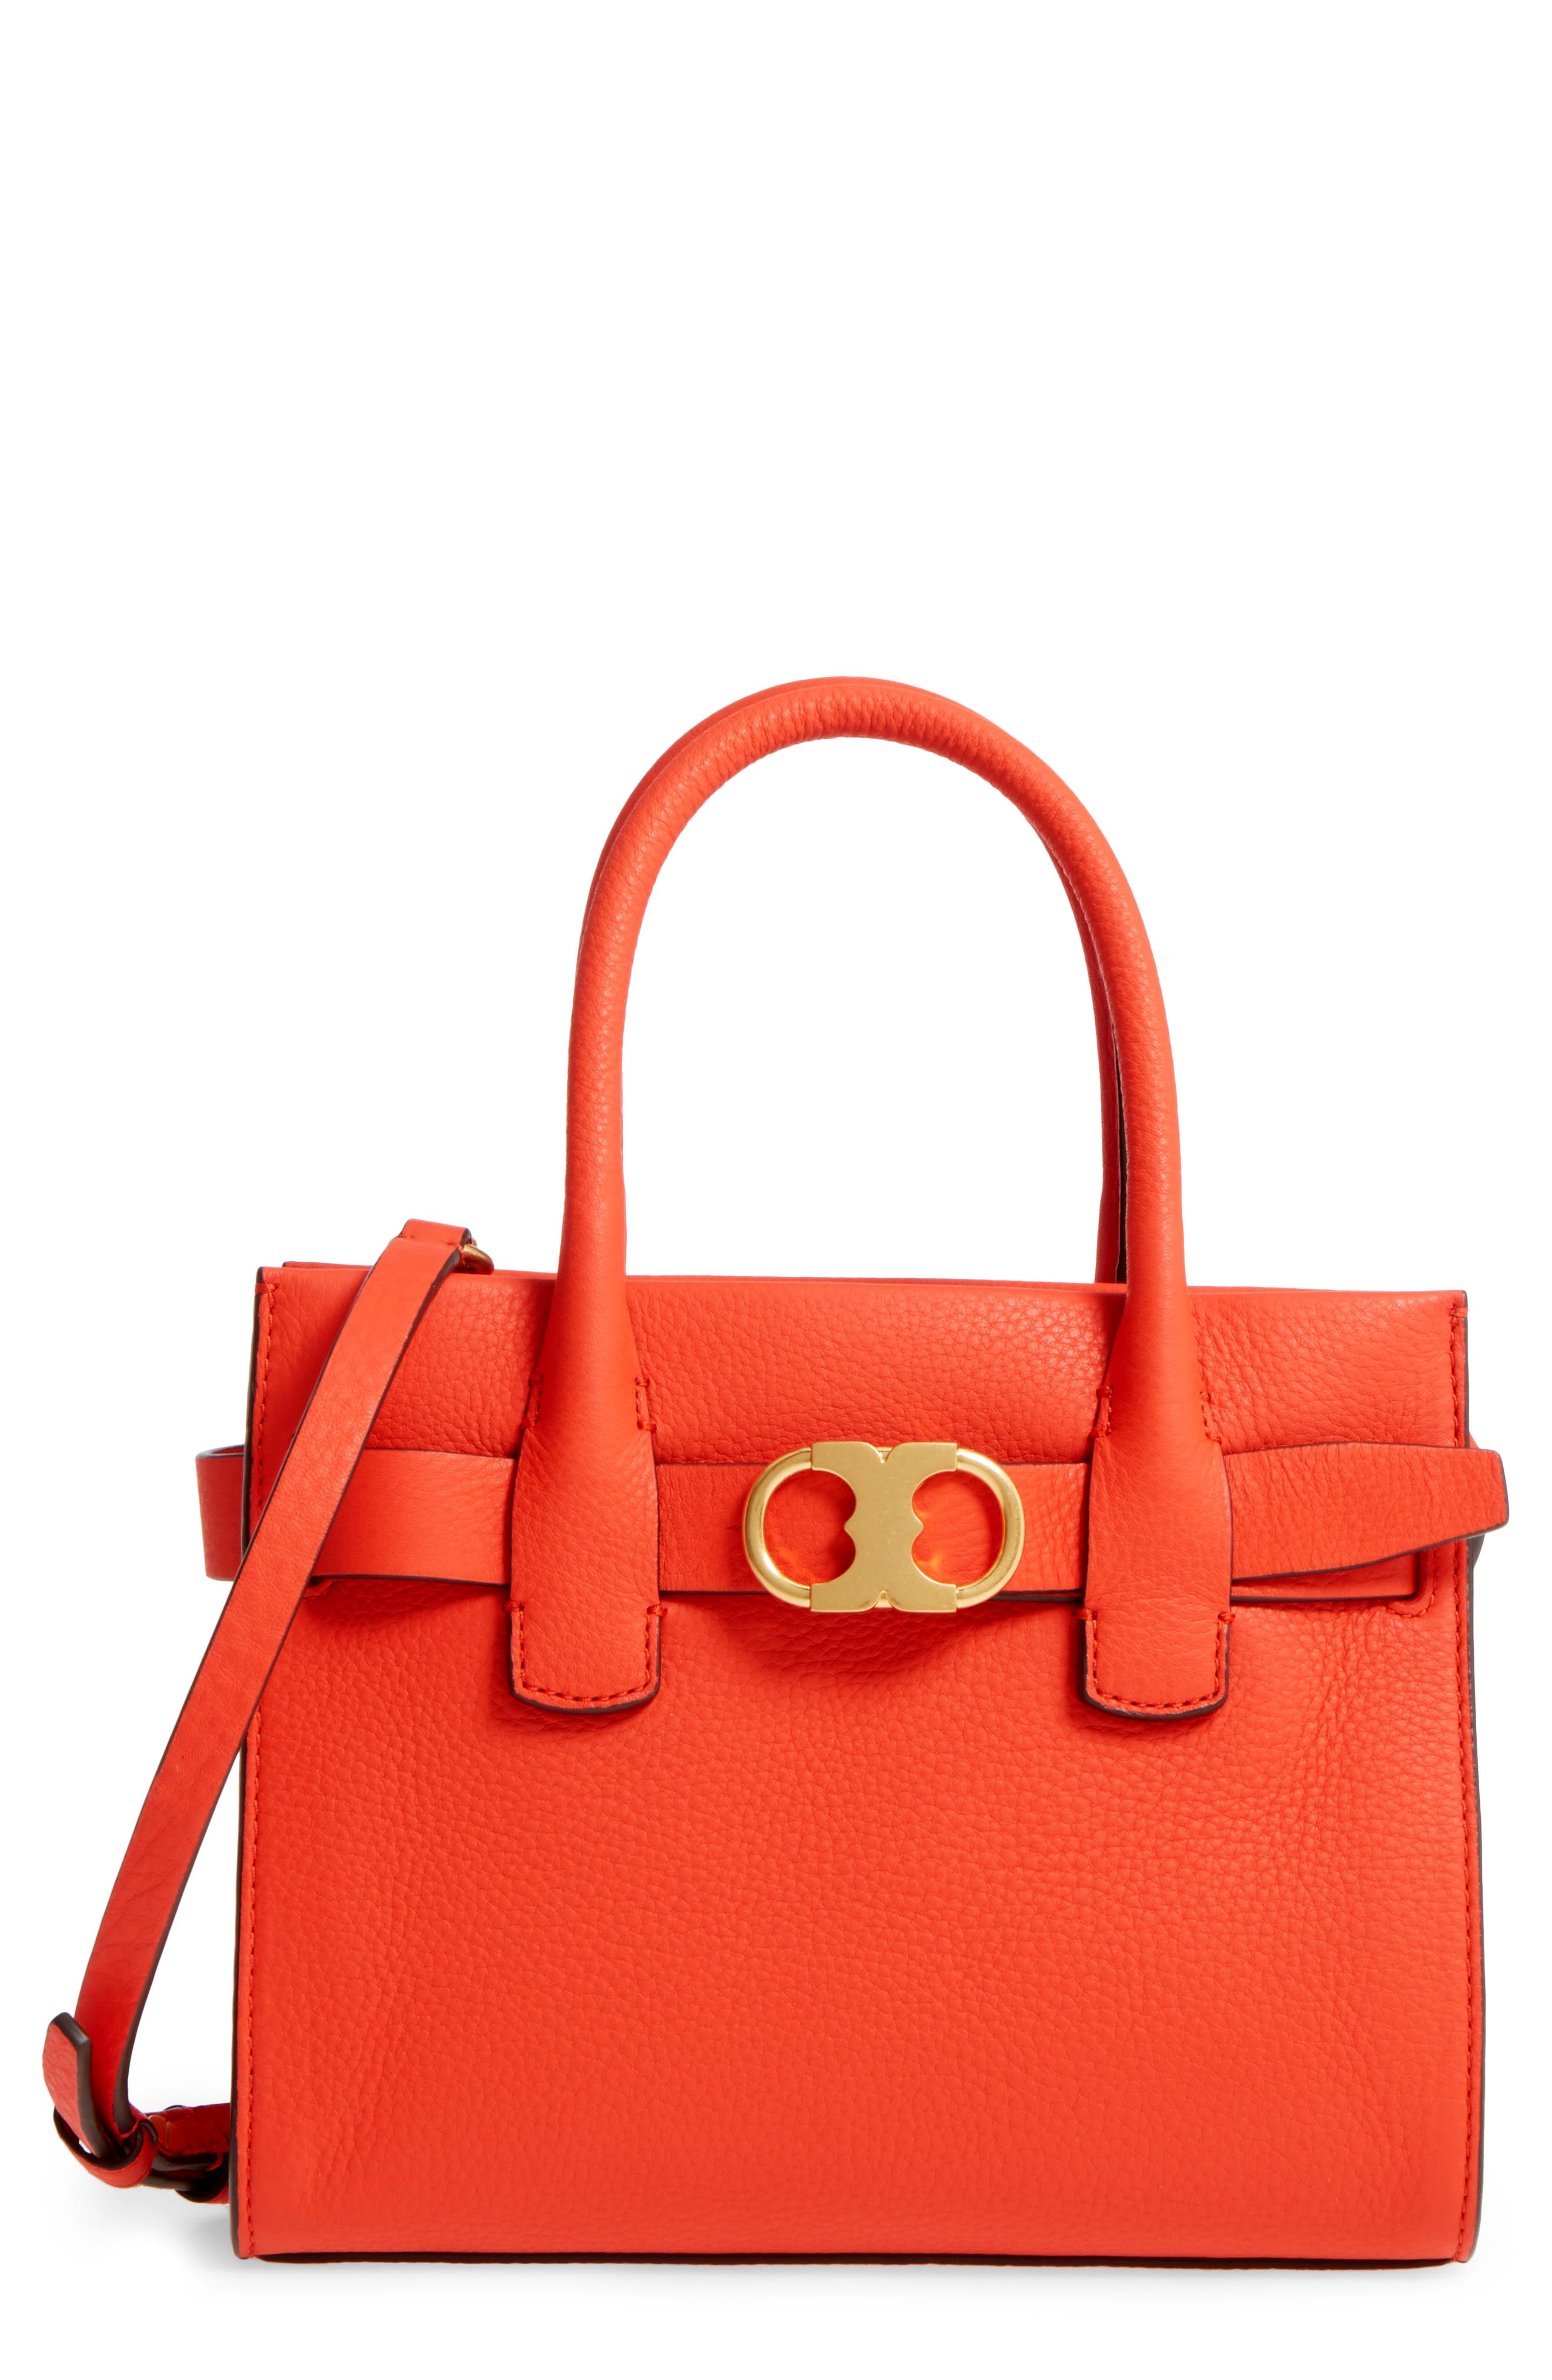 Main Image - Tory Burch Small Gemini Link Leather Tote